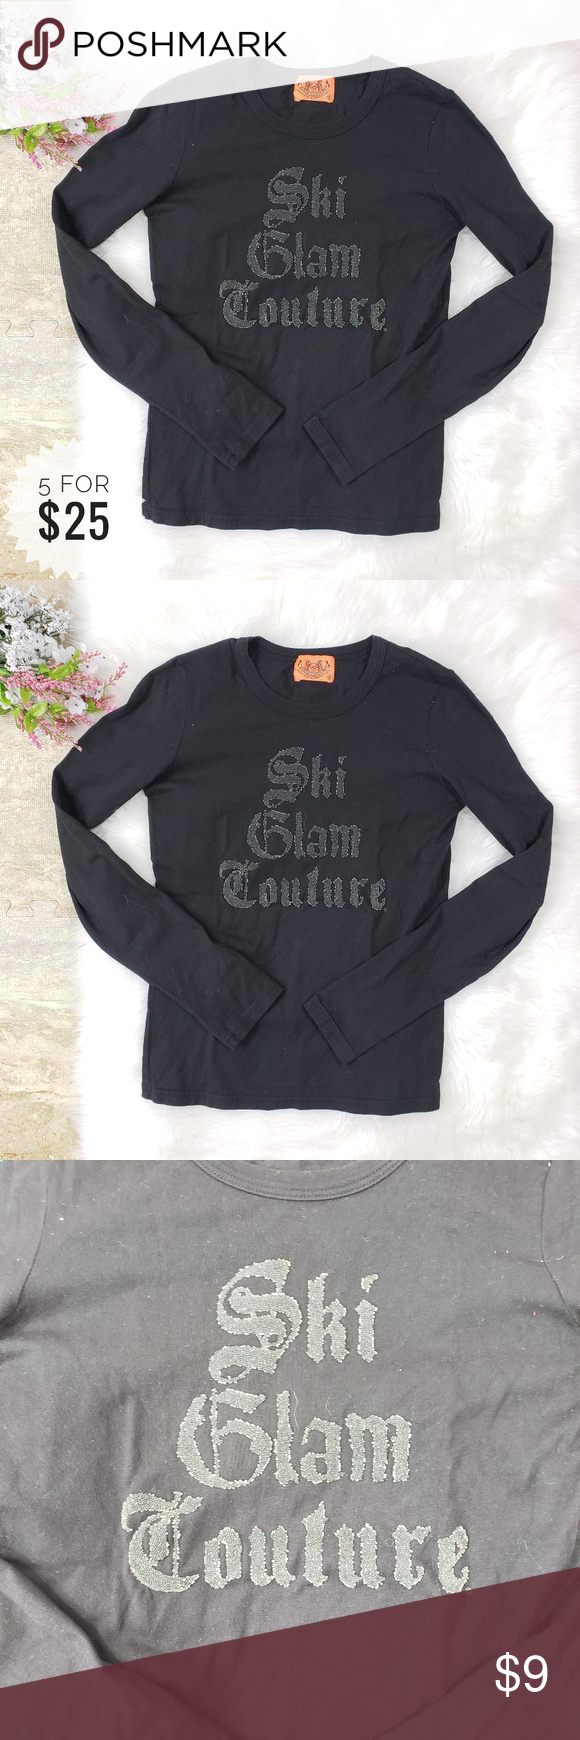 dda1e7243b Juicy Couture Long Sleeve Tee Size Small -All items  10 and under are 5 for